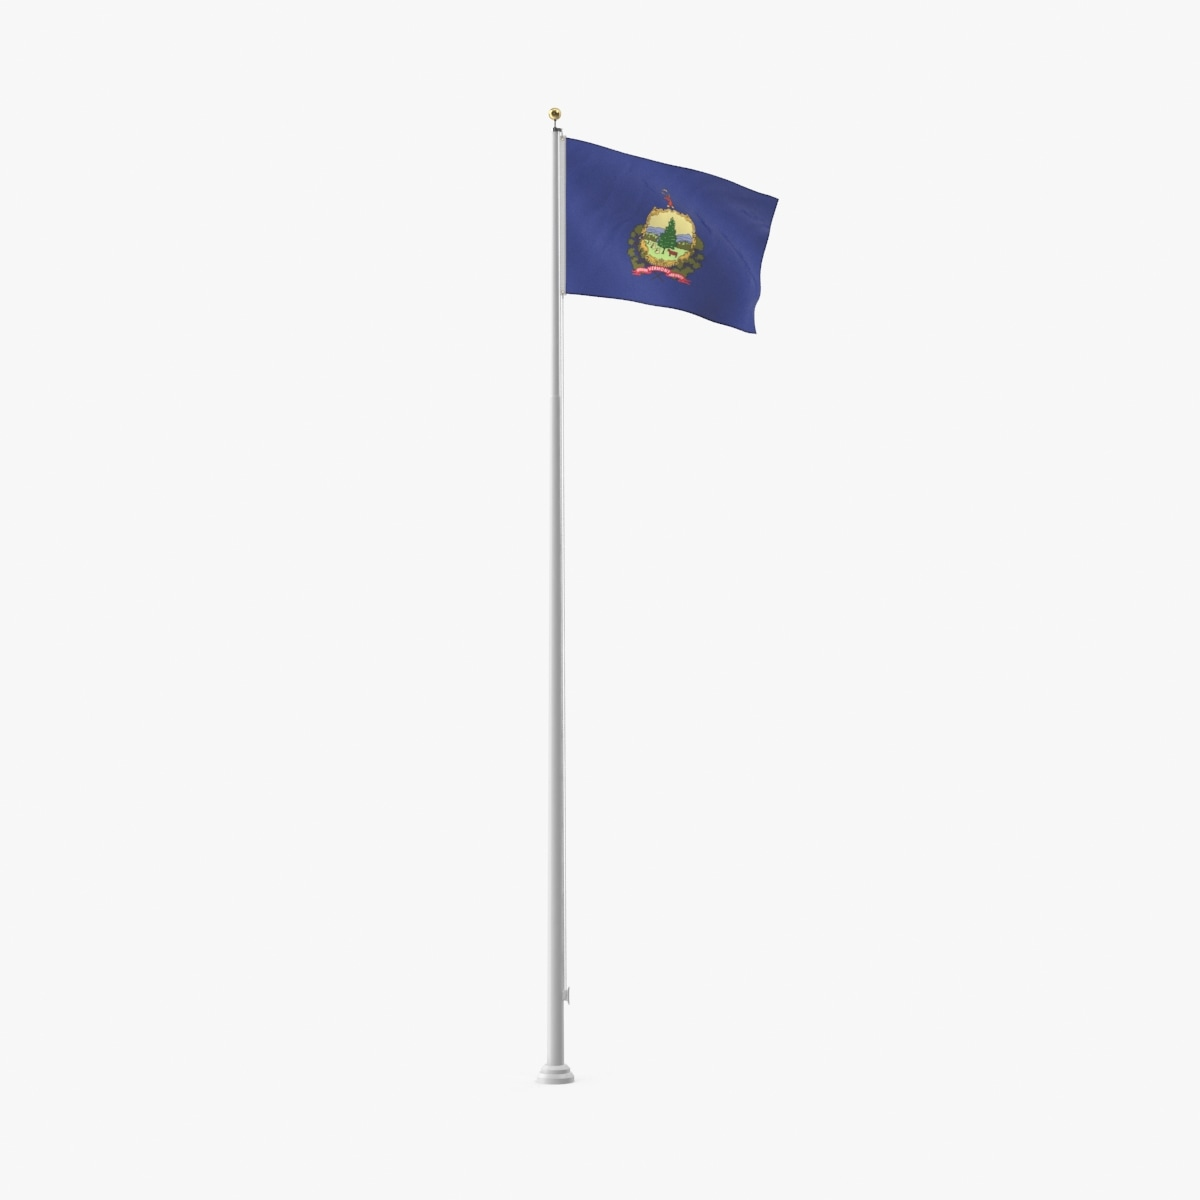 state-flags---vermont model